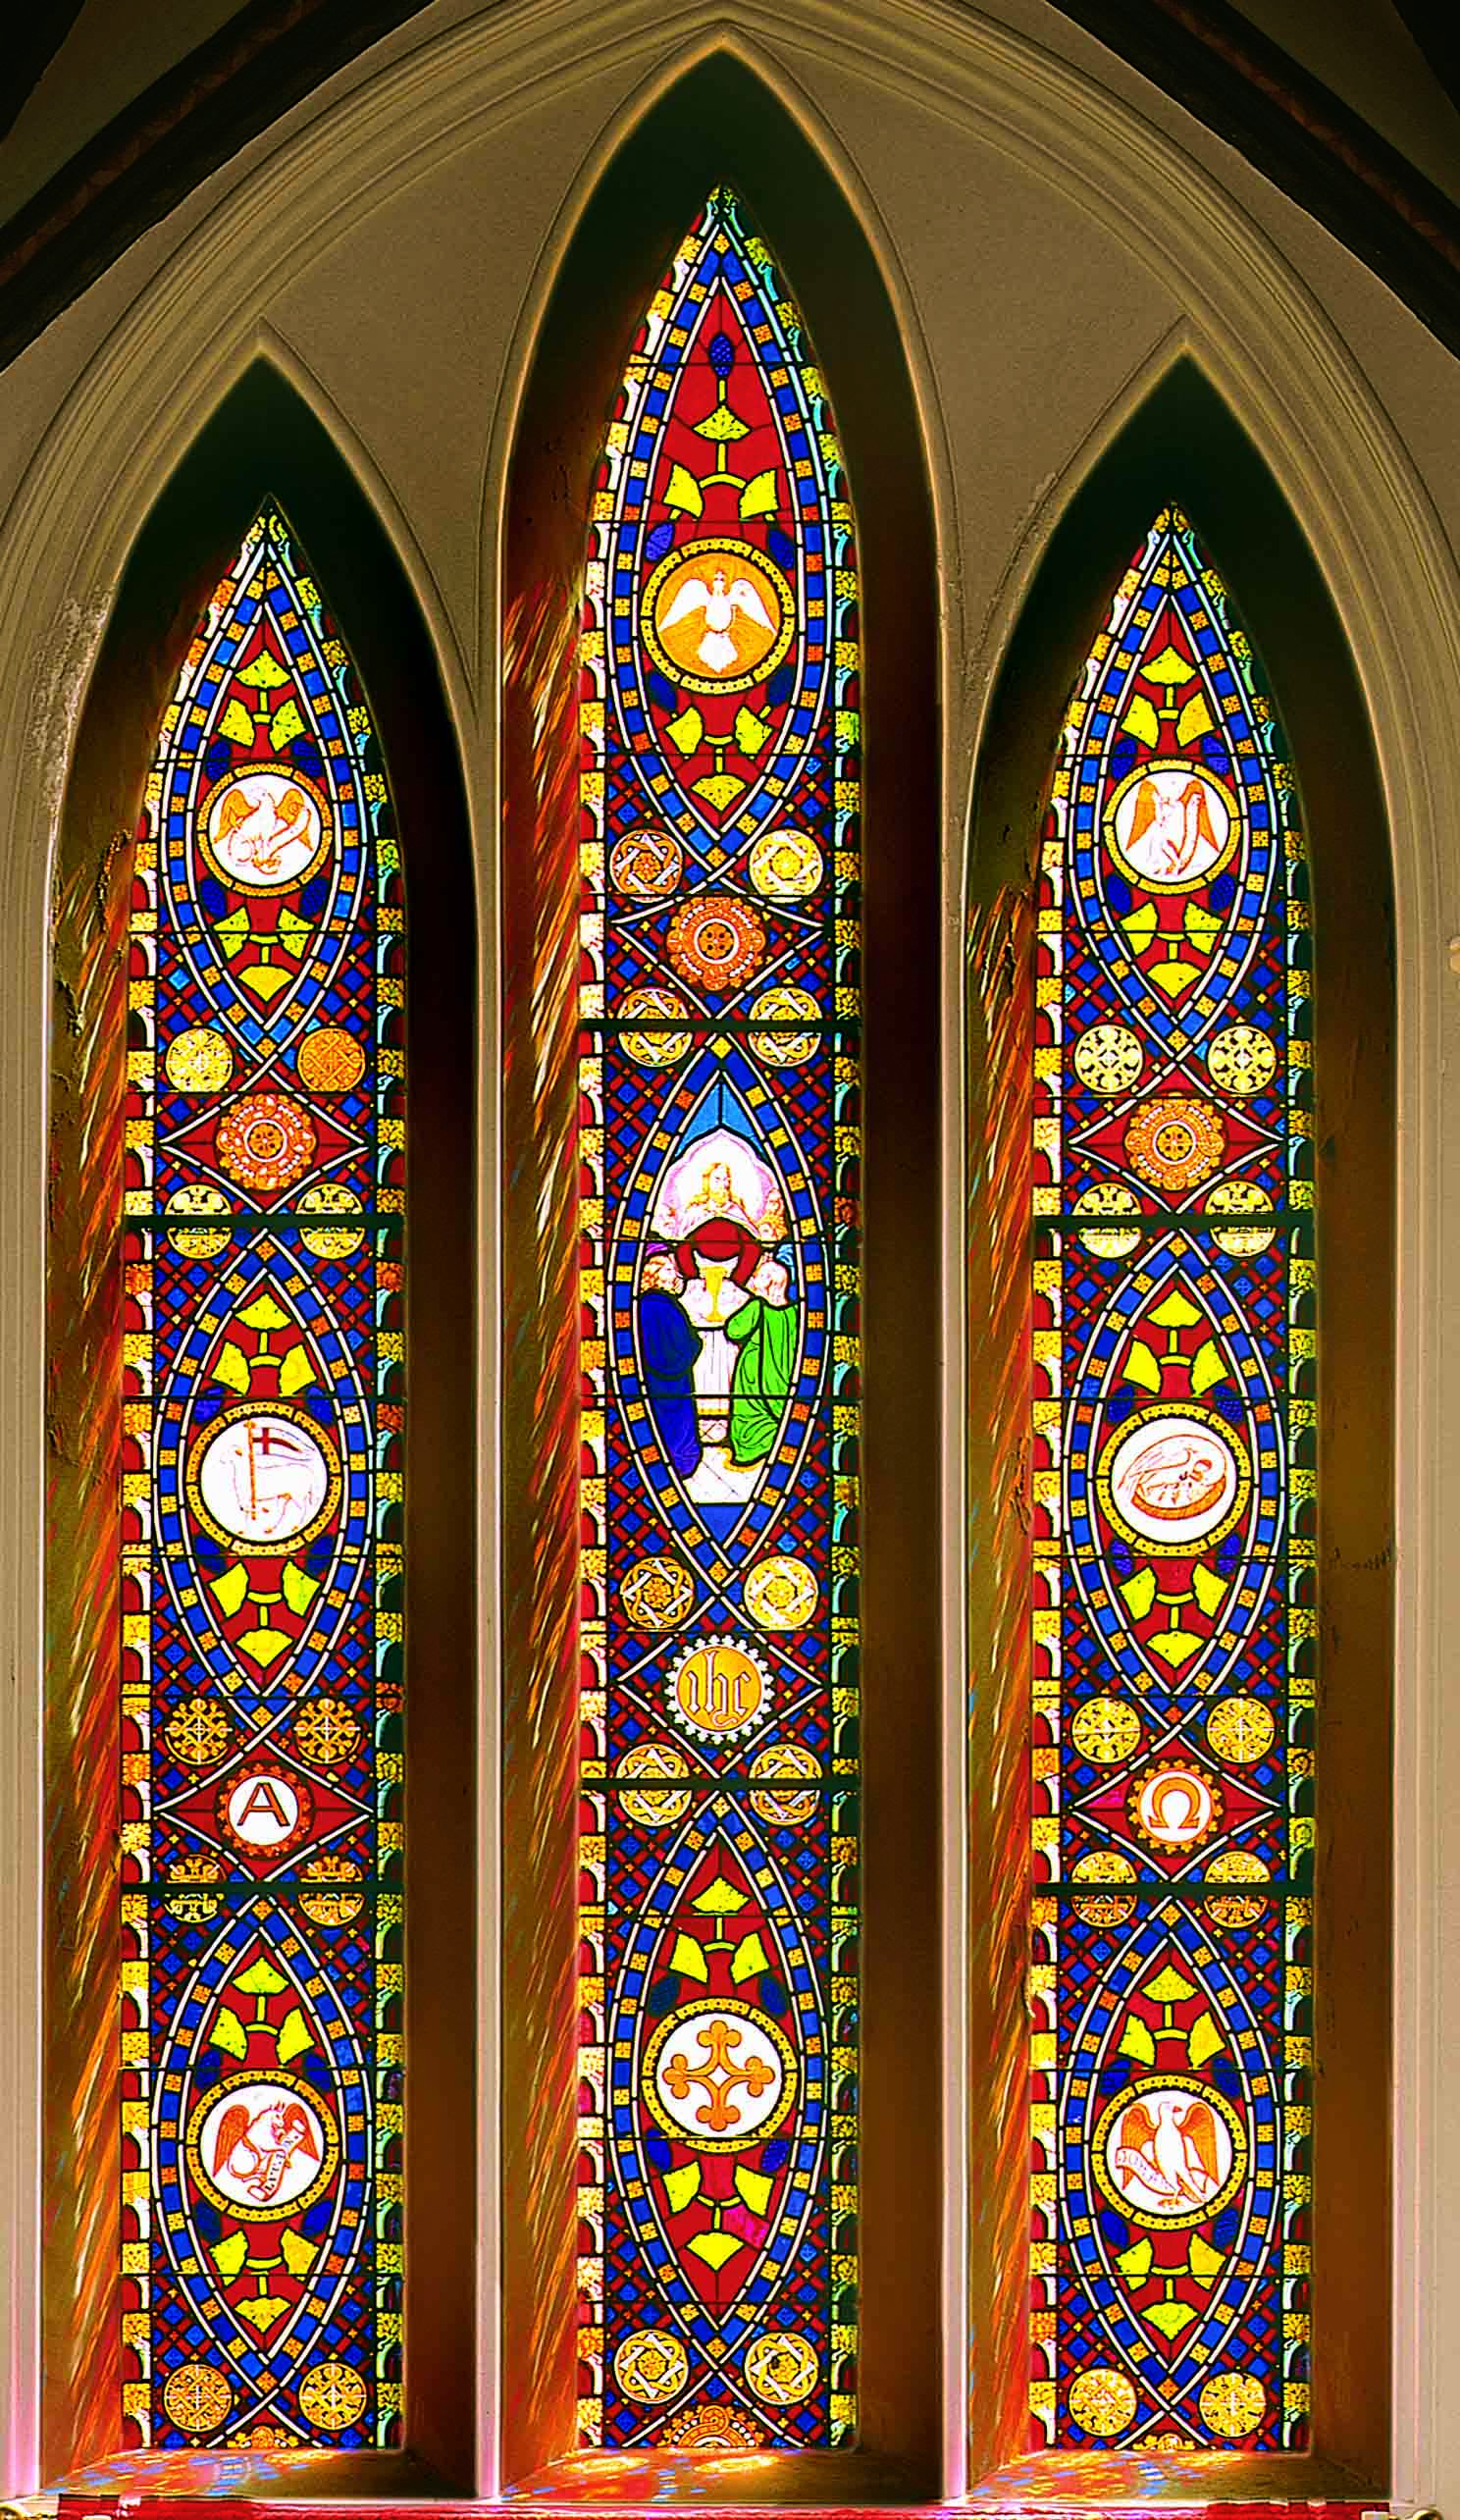 Stained glass window by John Bolton behind the altar at St. Mary's Episcopal Church.